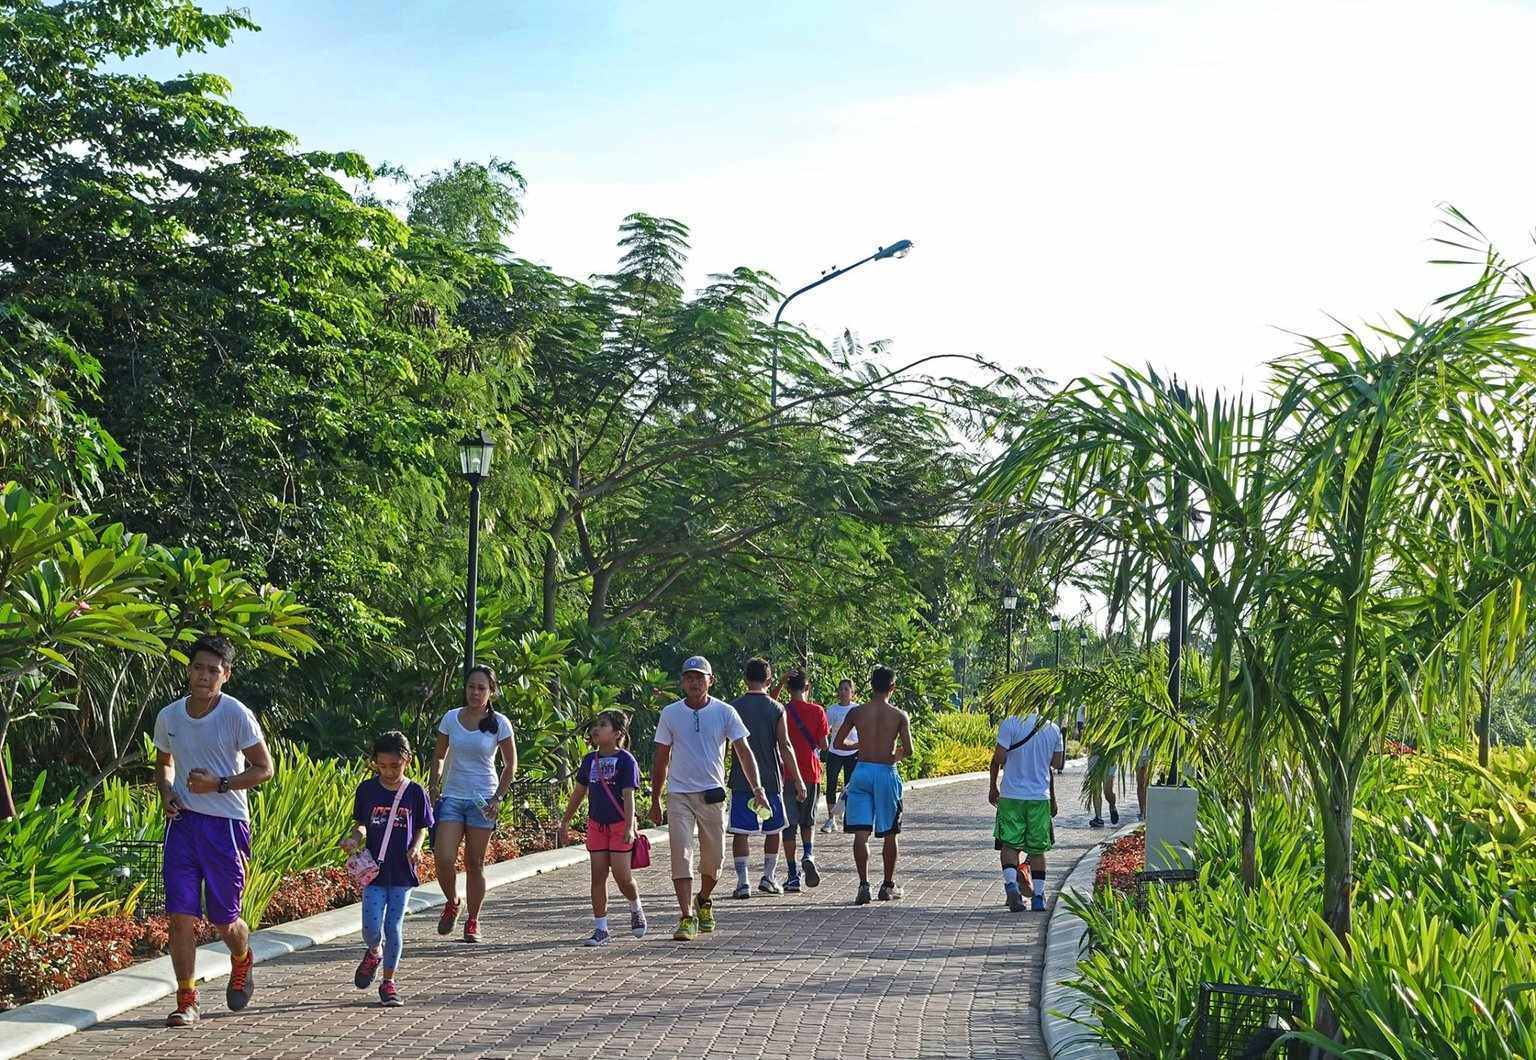 HAVEN. Envisioned as a place of leisure for Ilonggos and as a potential tourist spot, the Iloilo River Esplanade may soon be reopened to bikers. Photo courtesy of Paulo Alcazaren